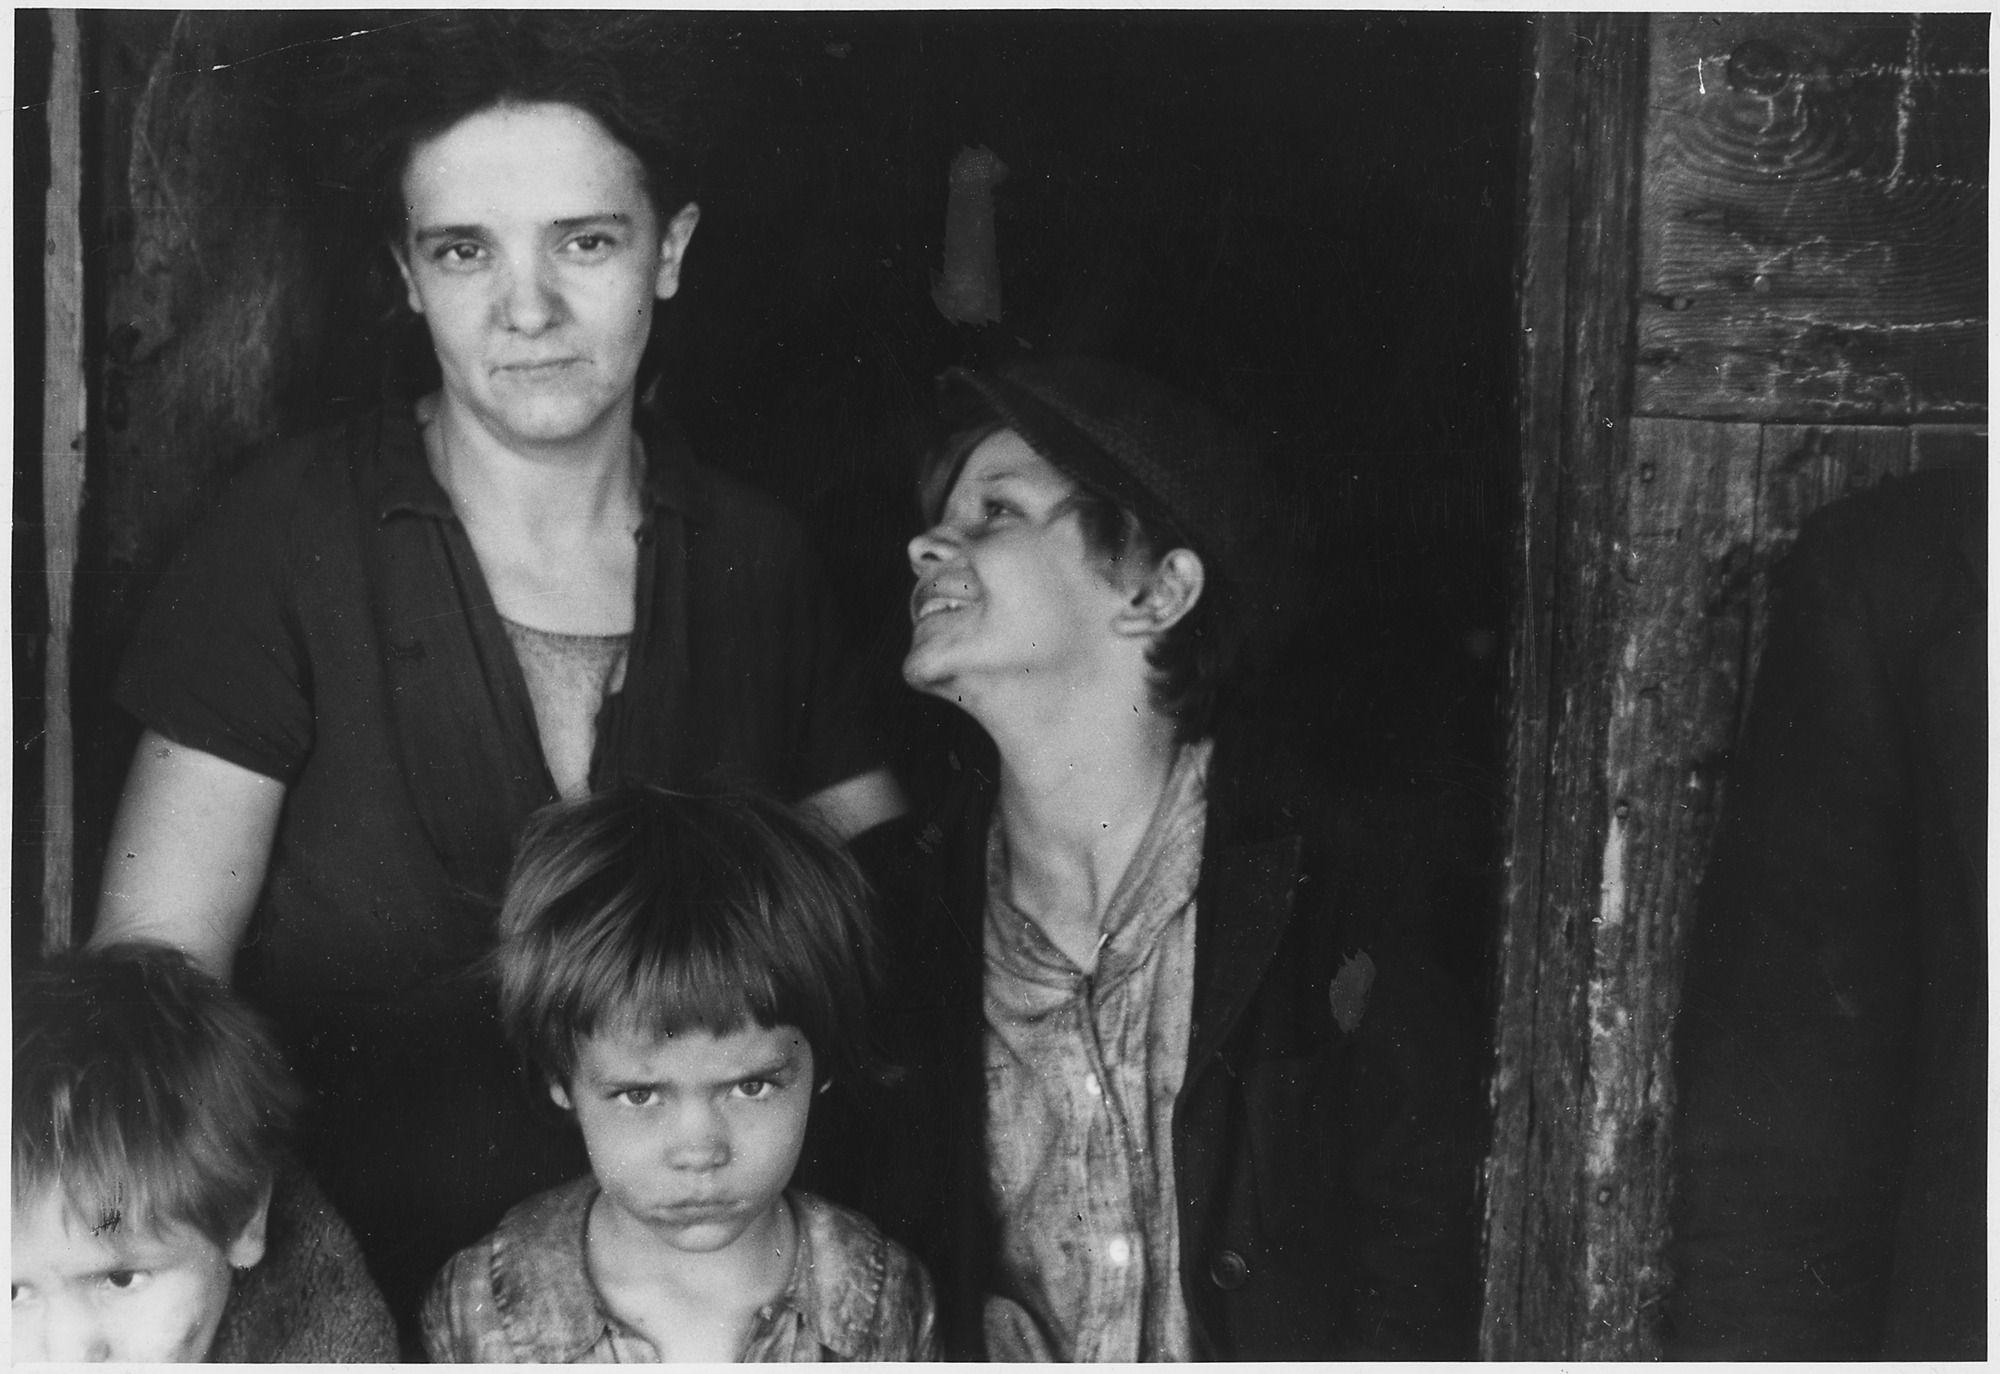 Farm Security Administration: Family of coal miner in West Virginia, circa 1935.